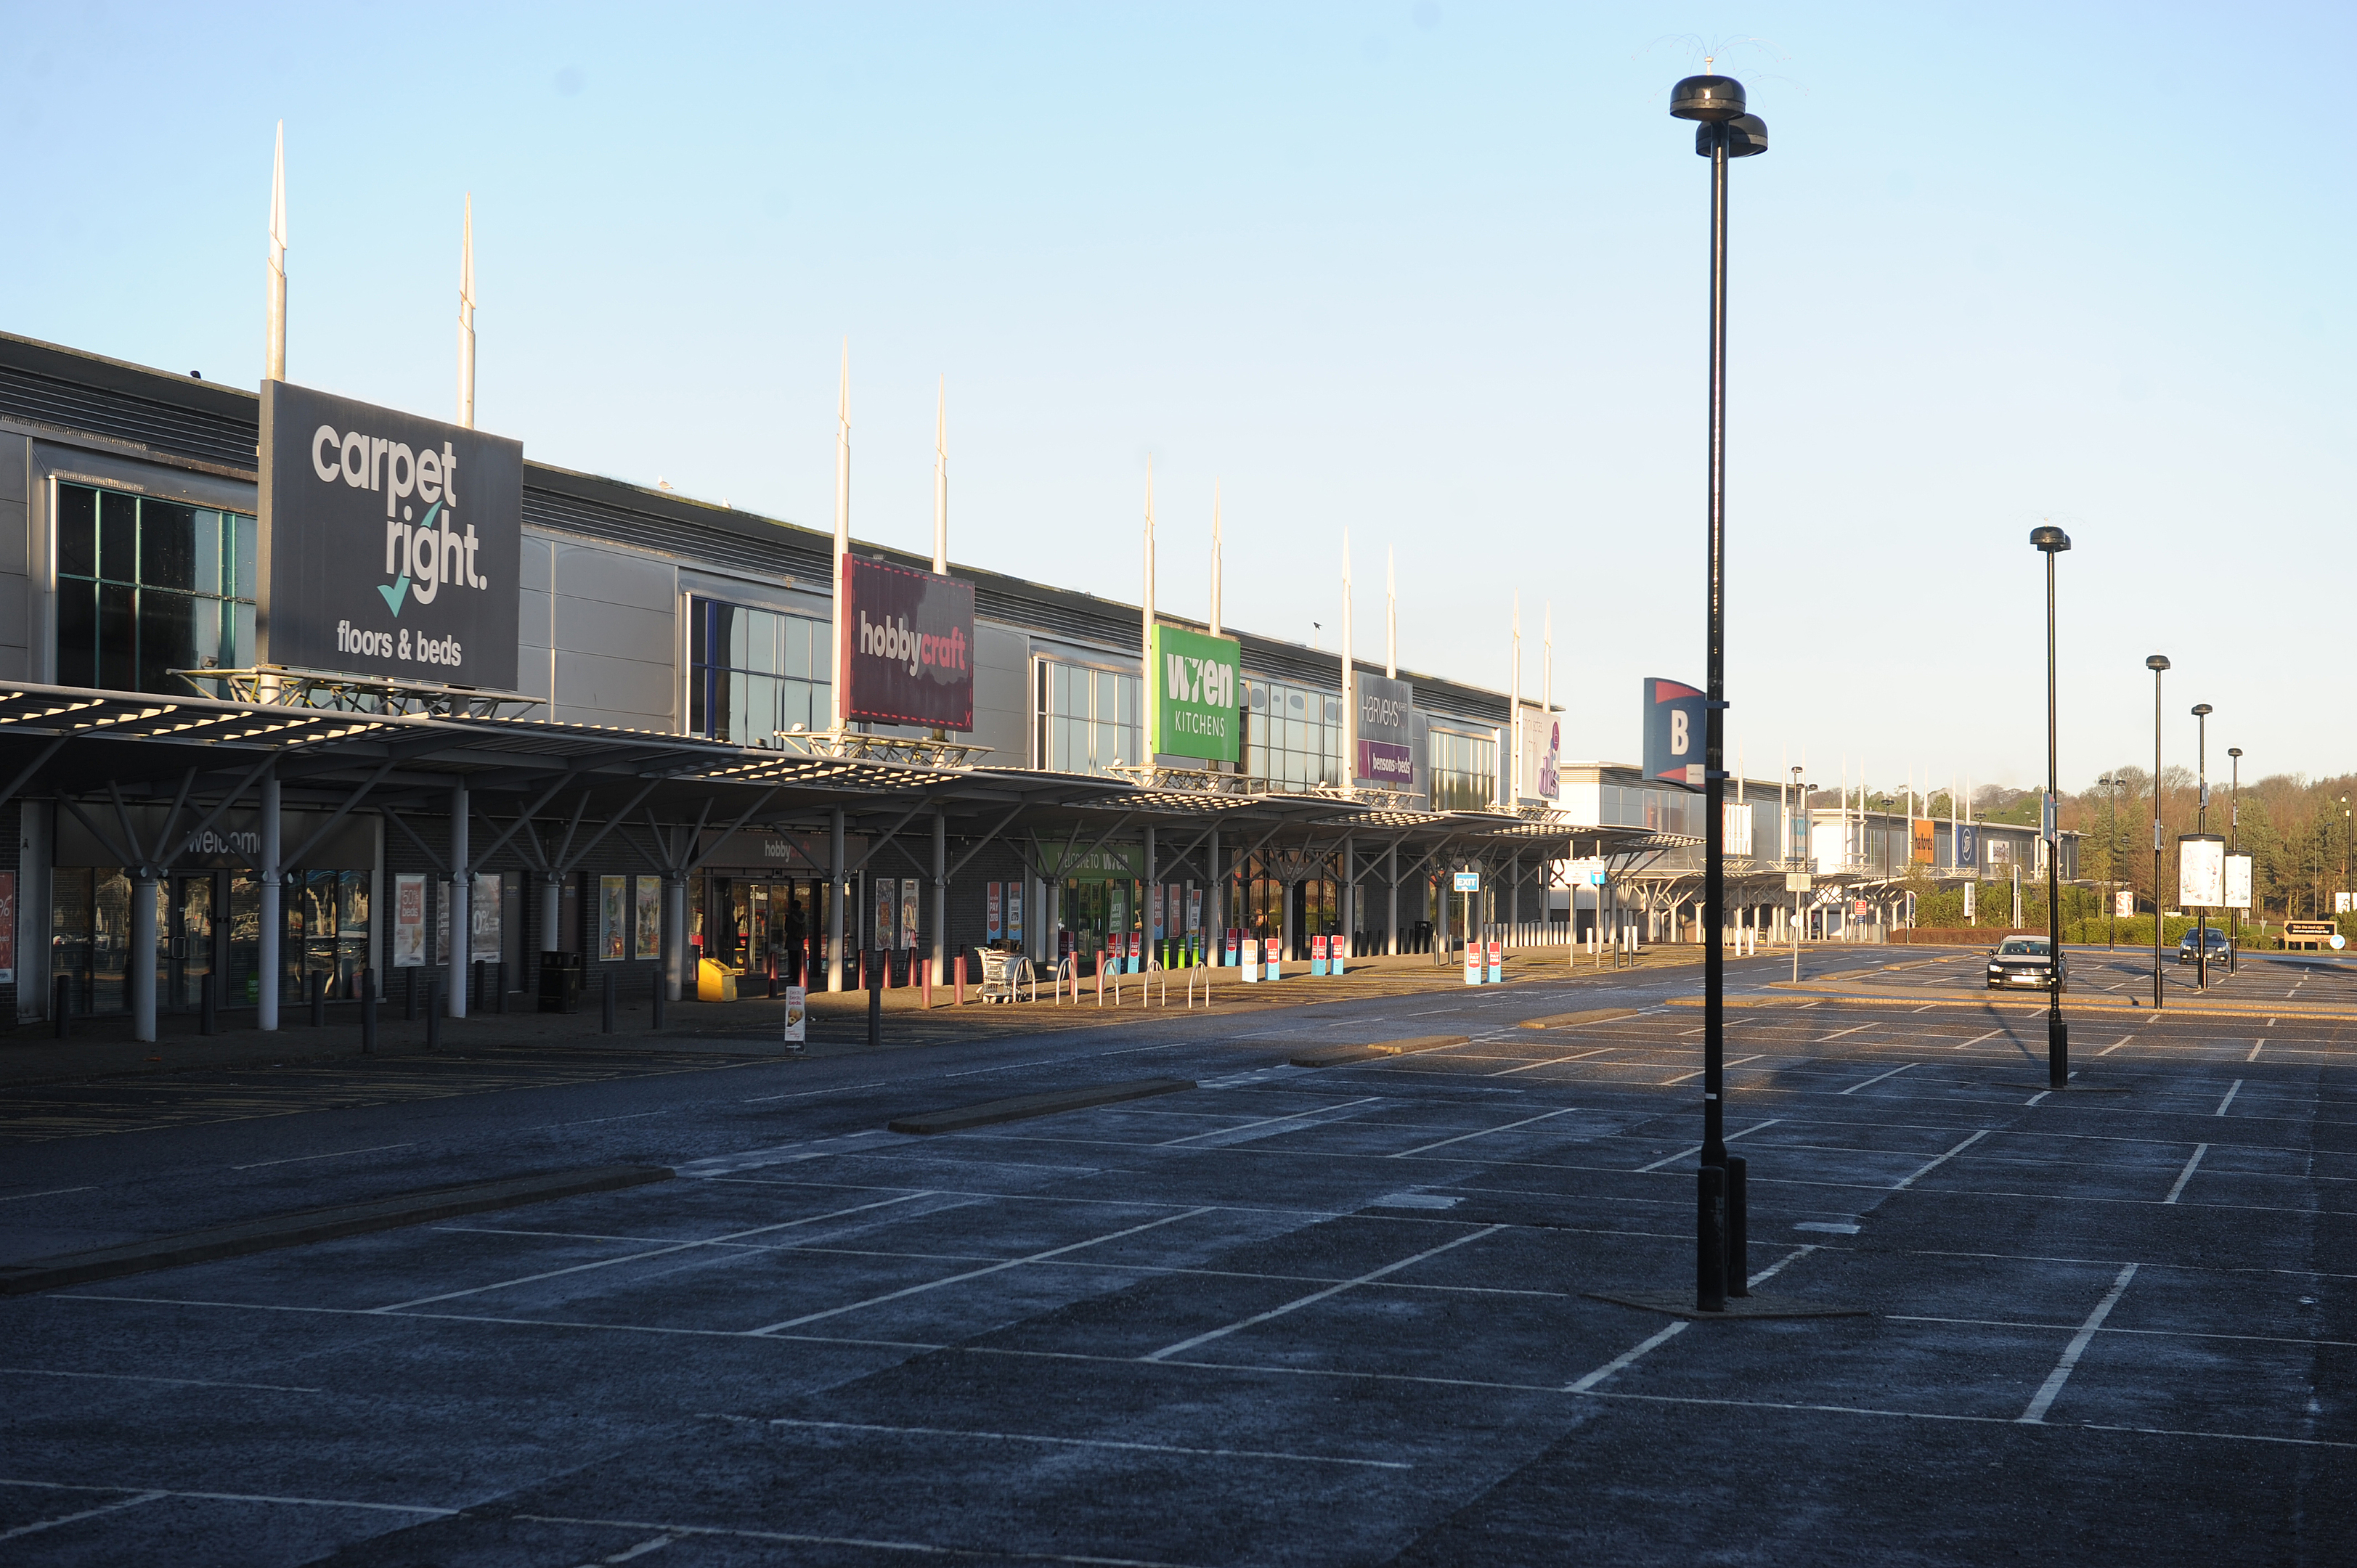 Kingsway West Retail Park is home to an empty unit with a rateable value of £409,000